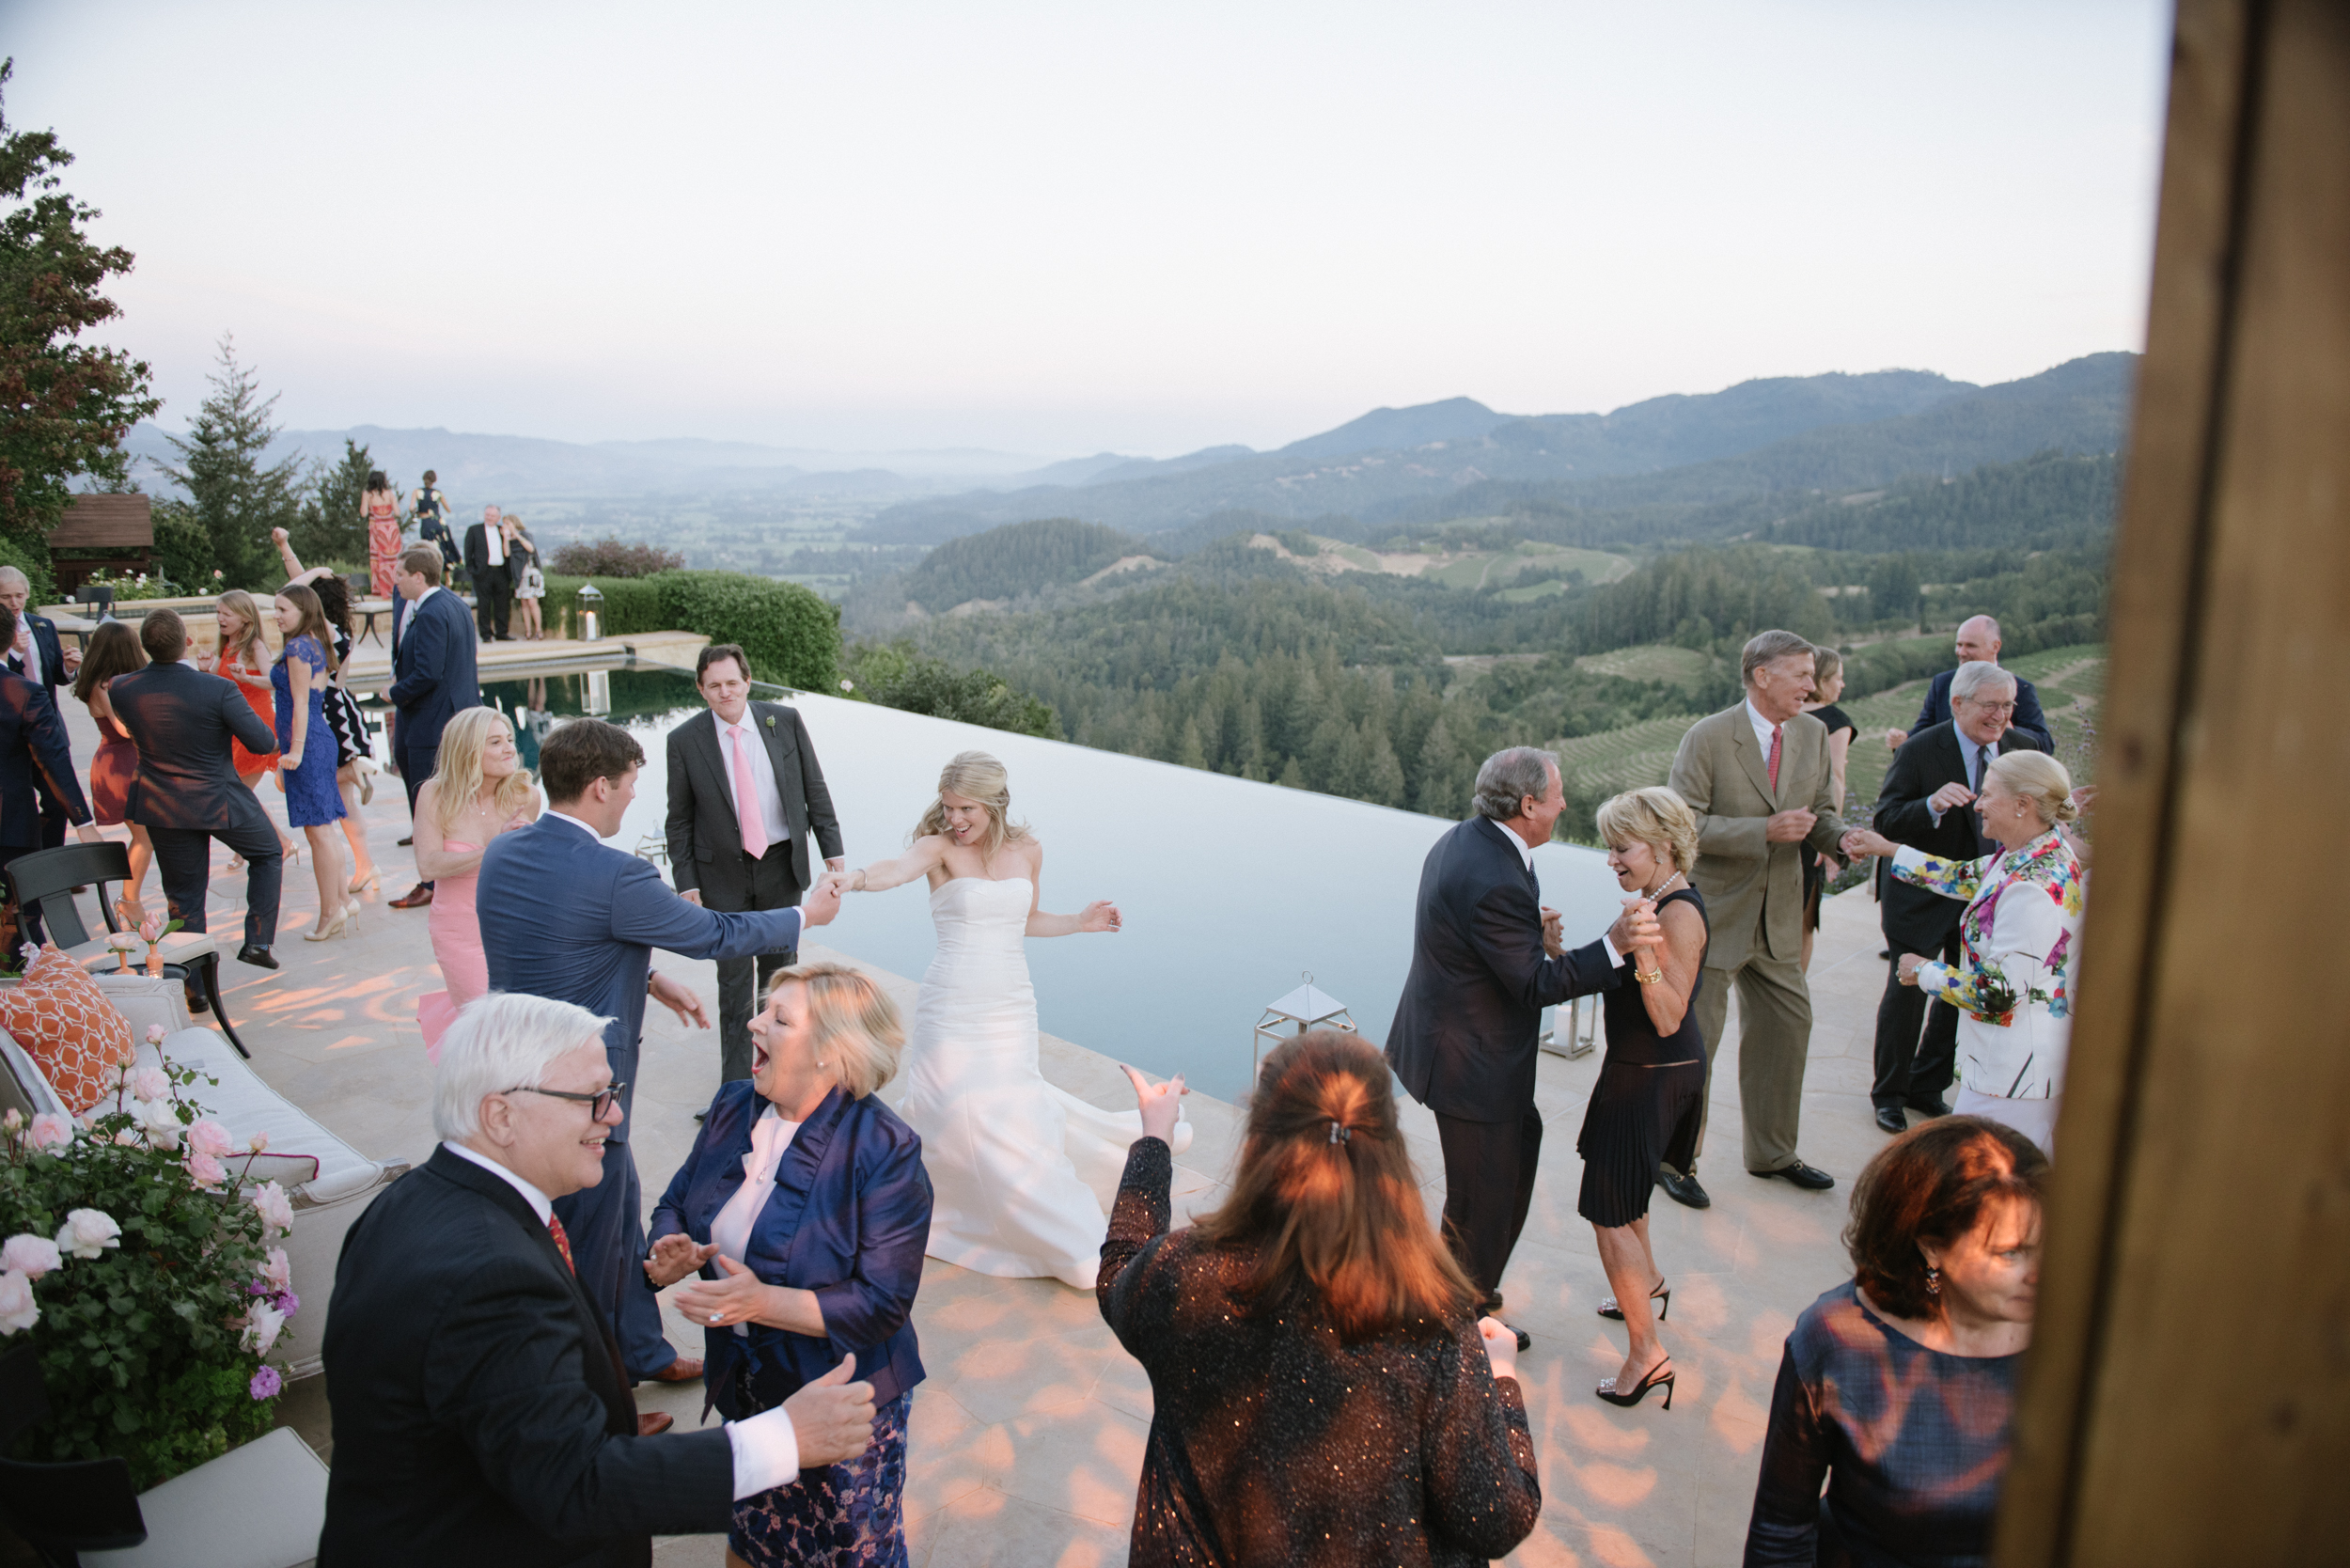 Dancing by the pool with the view of the Napa countryside continues into the night as guests celebrate Sarah and James' special day; photo by Sylvie Gil